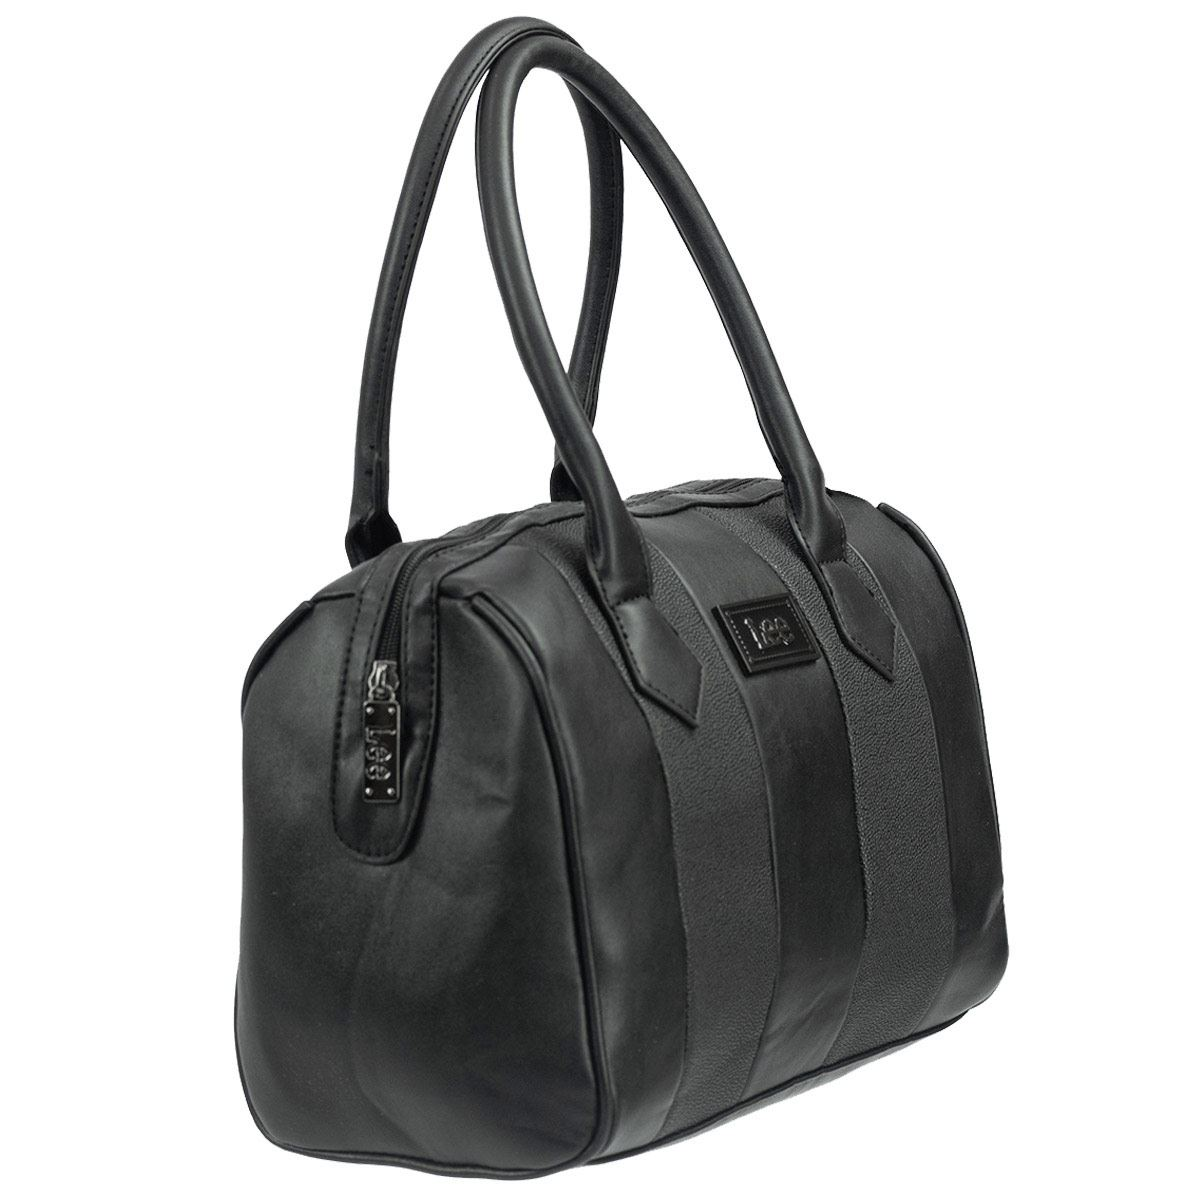 Bolso Bowling Lee Color Negro Modelo A01969